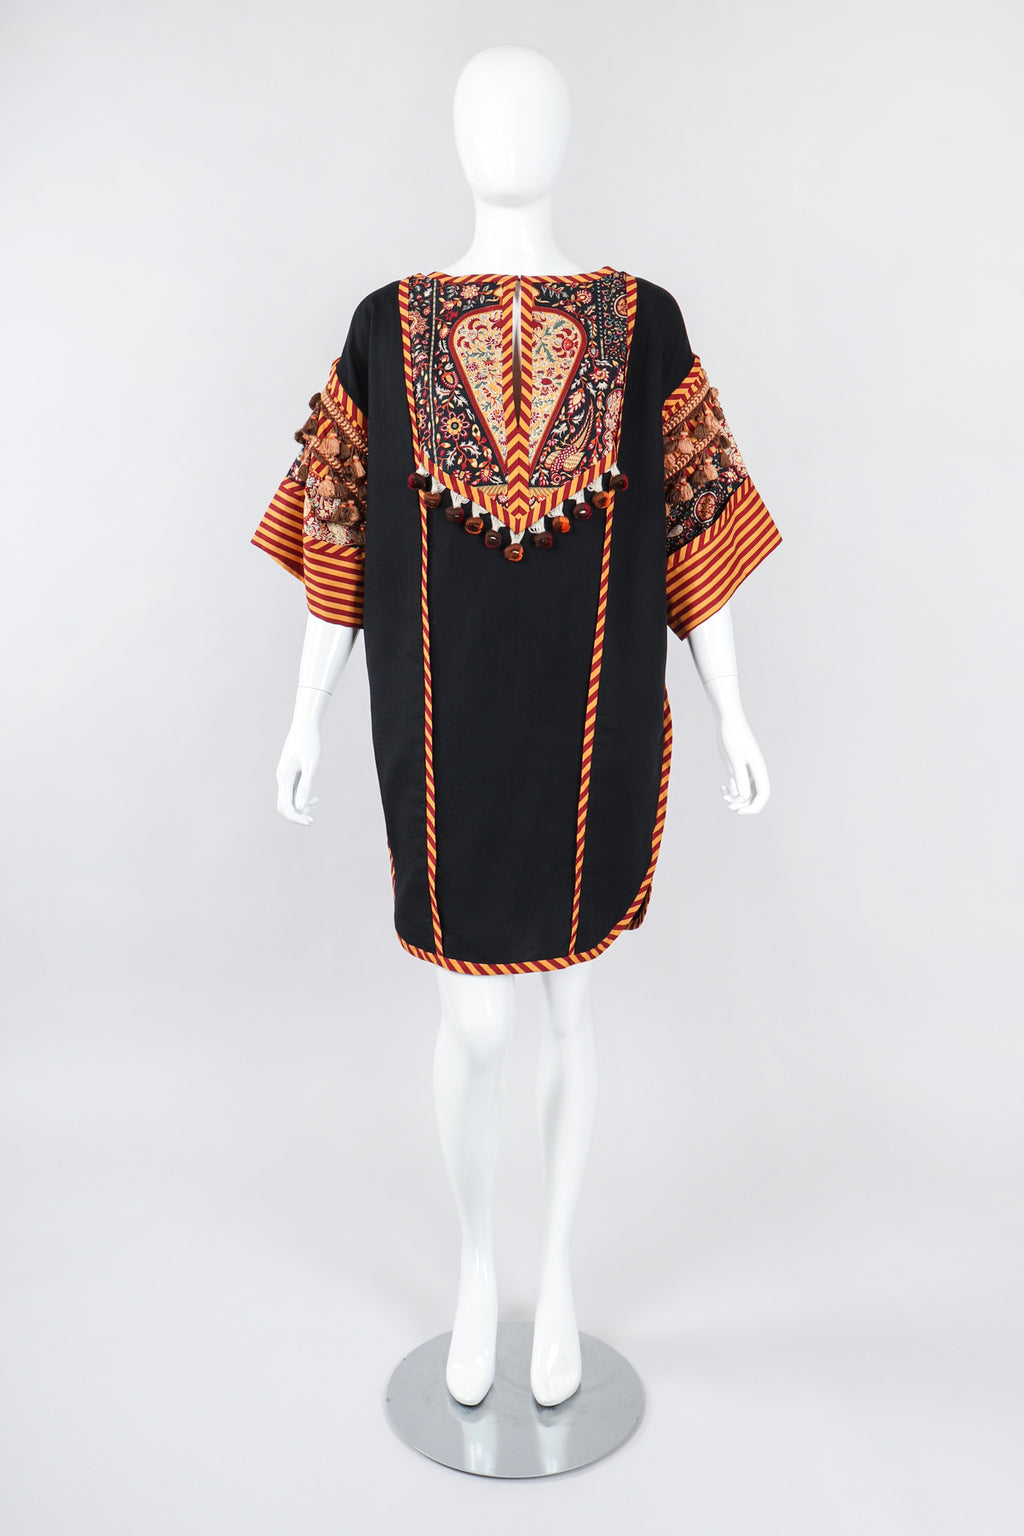 Recess Los Angeles Vintage Bob Mackie Mixed Print Cotton Tunic Dashiki Minidress